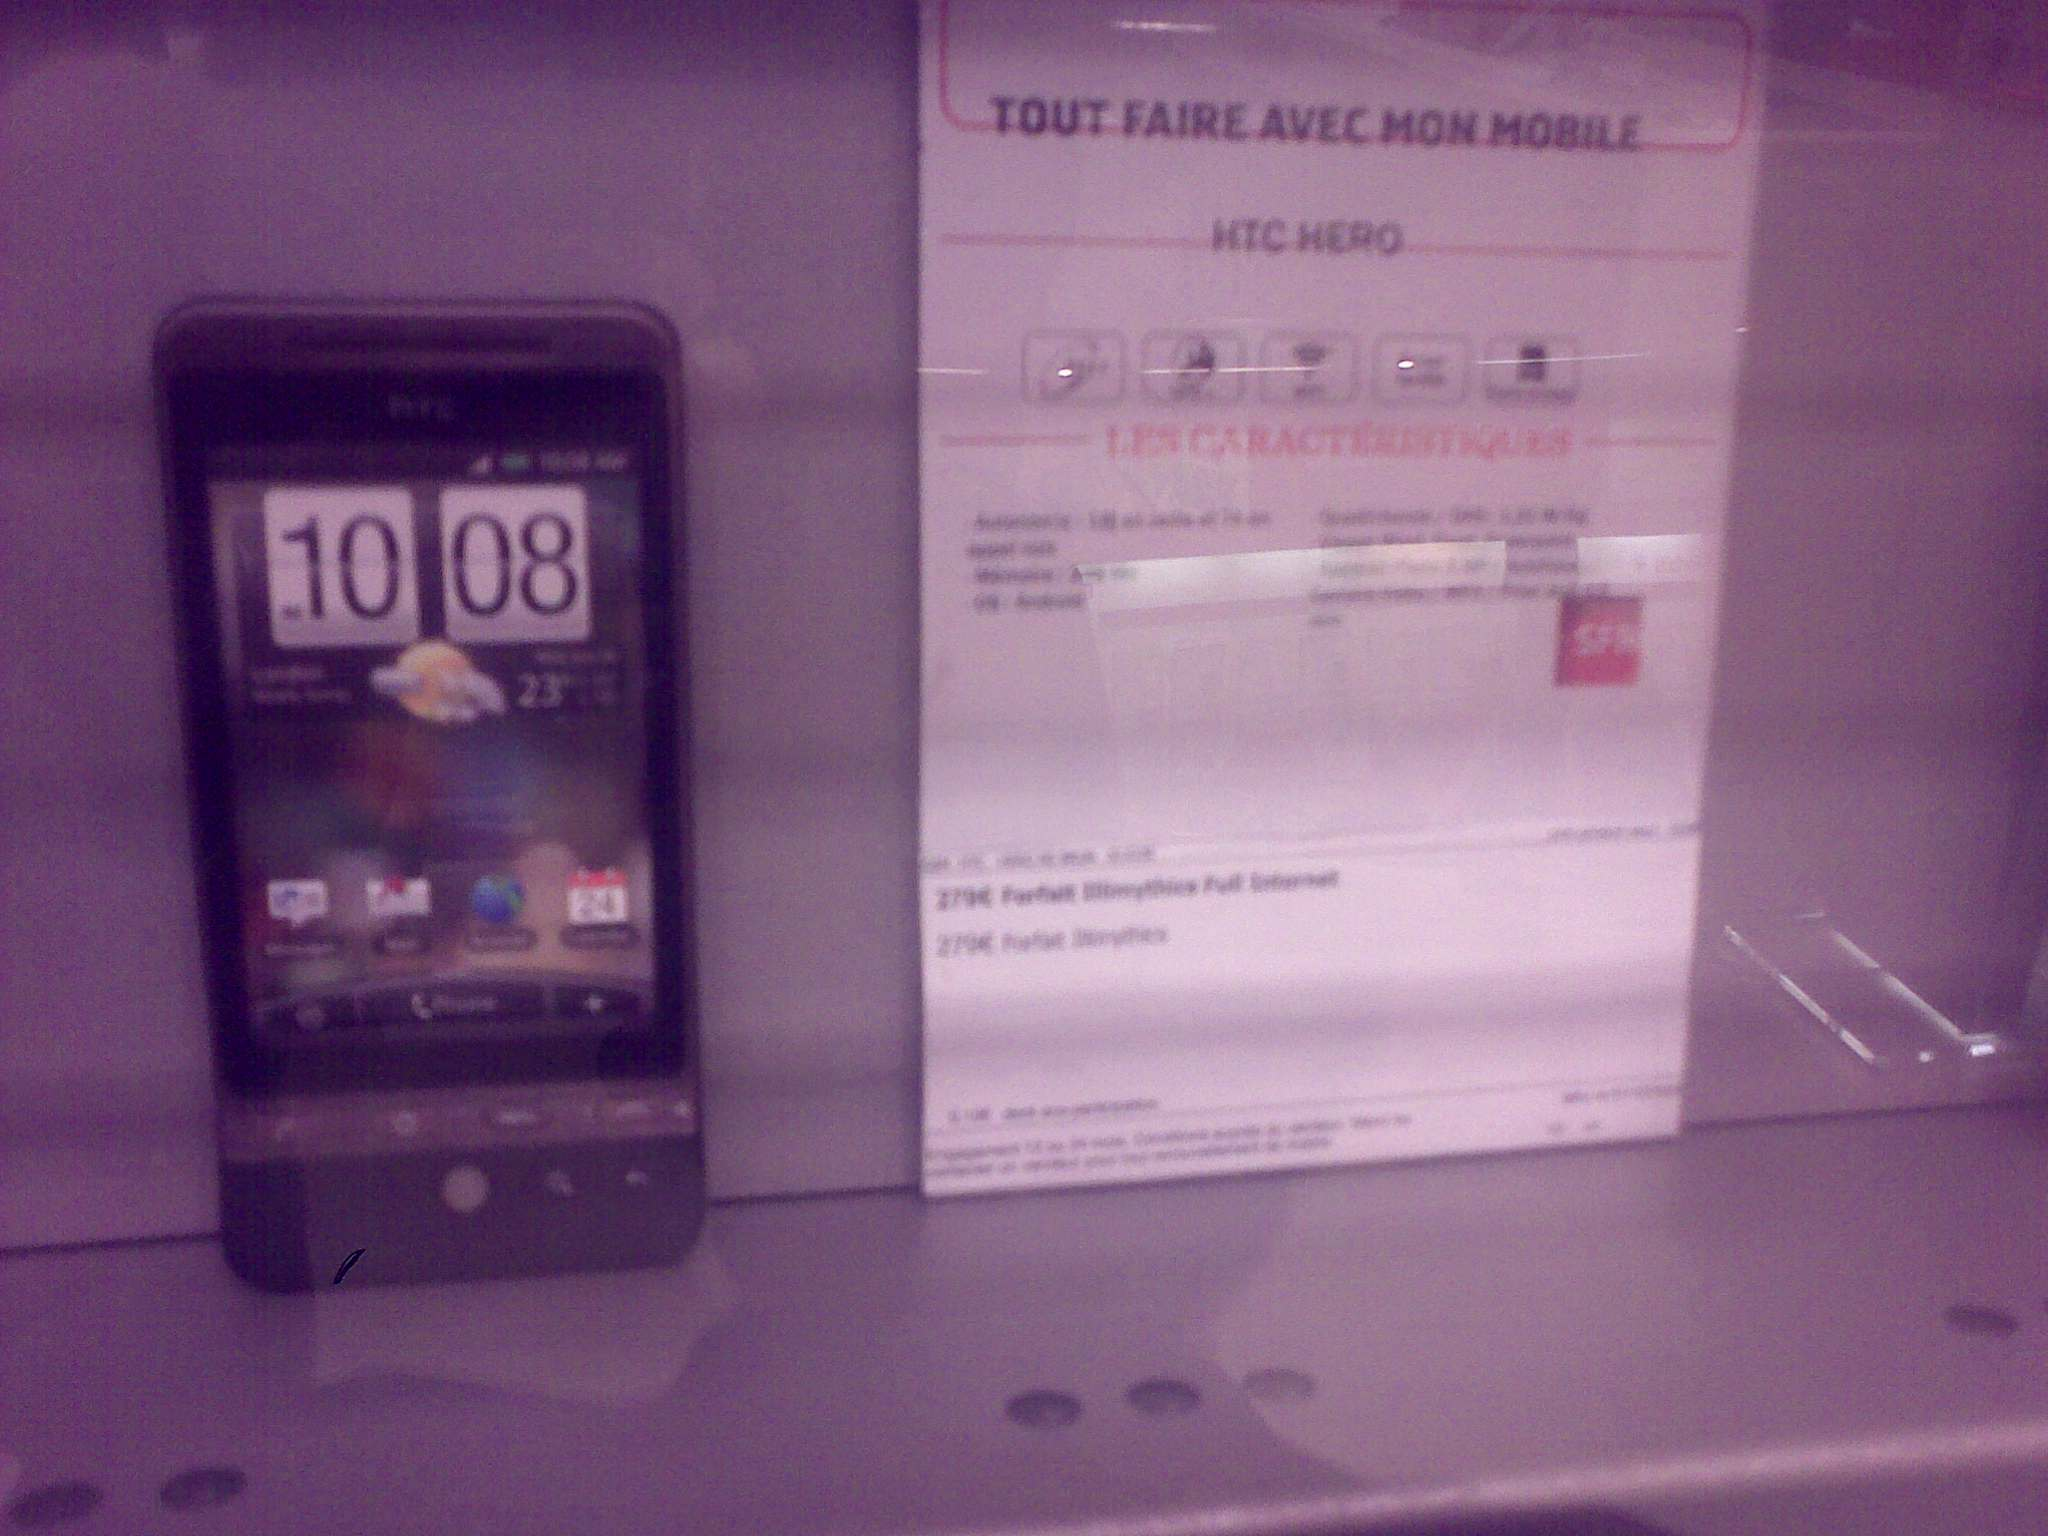 Le HTC Hero en boutique SFR